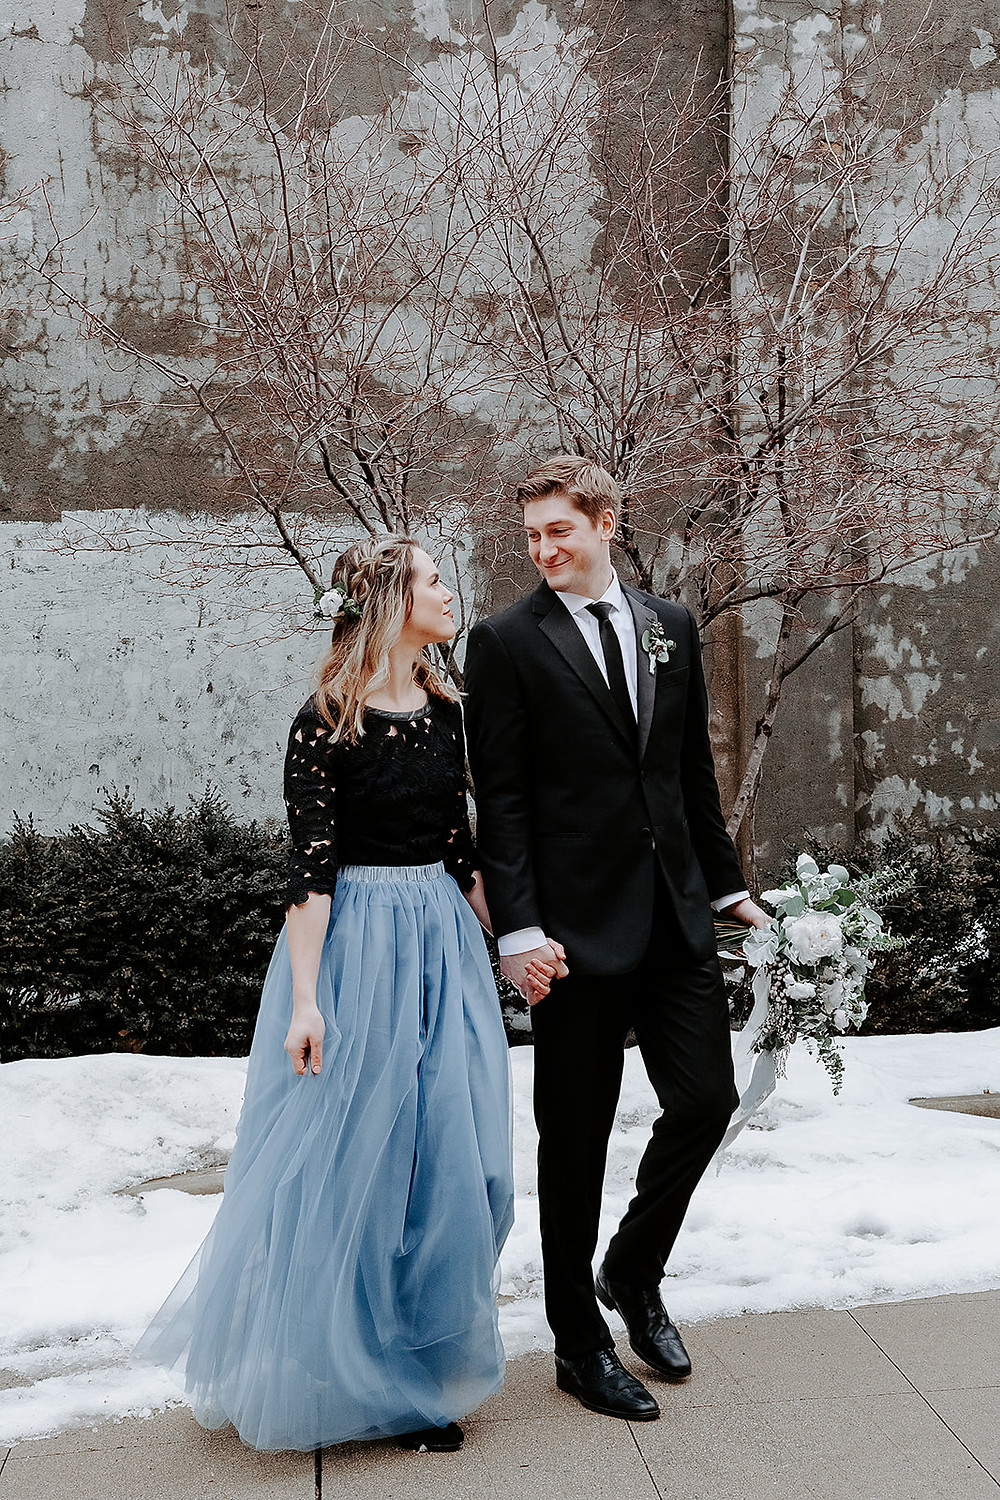 Bride and groom pose for photos following elopement ceremony at urban, Elgin IL venue